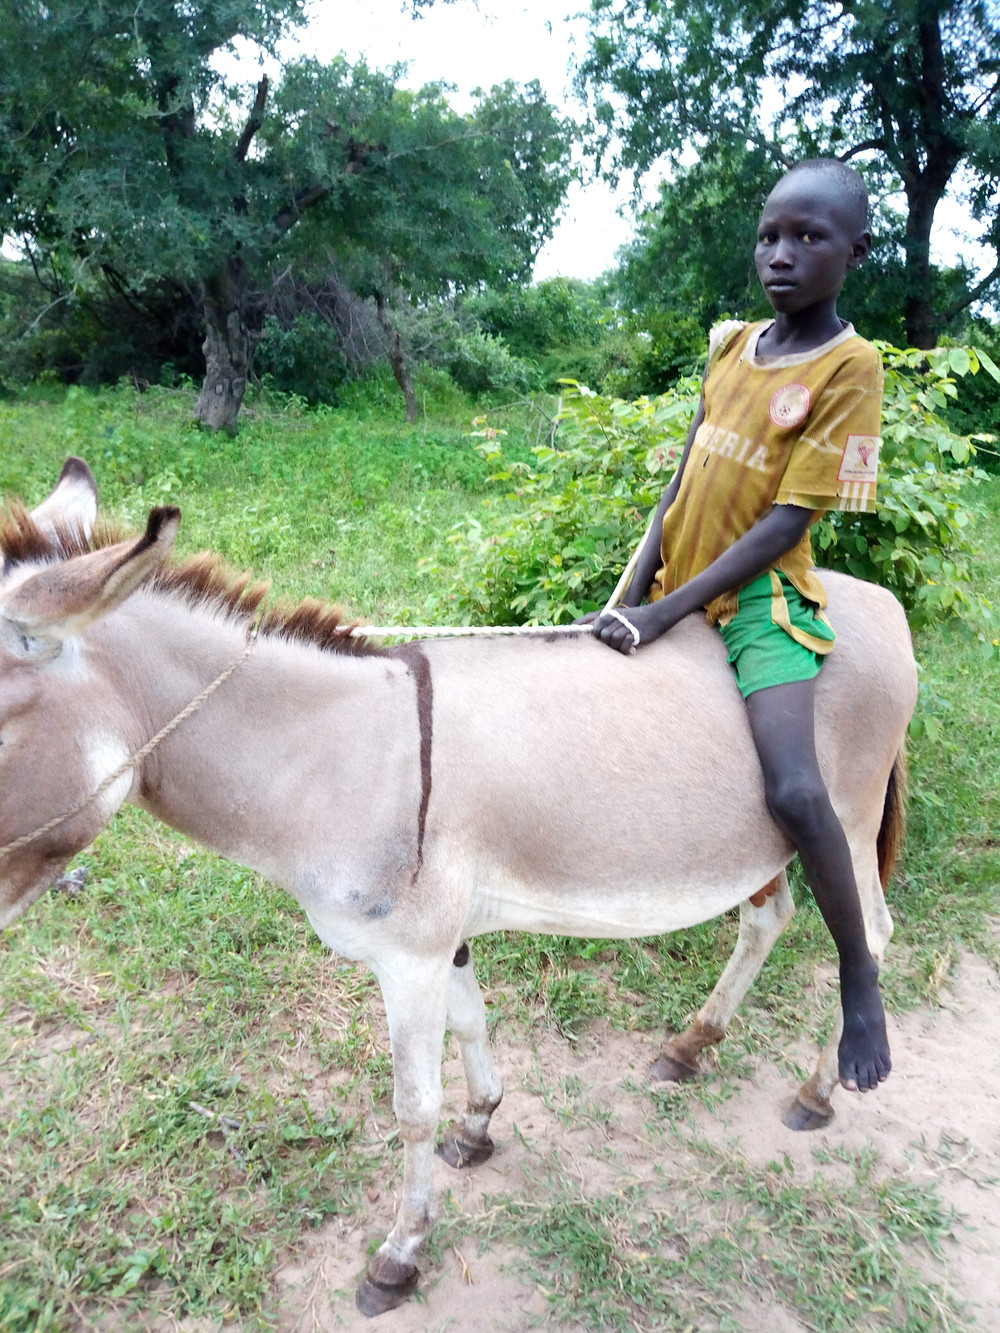 Child on donkey, used for transport